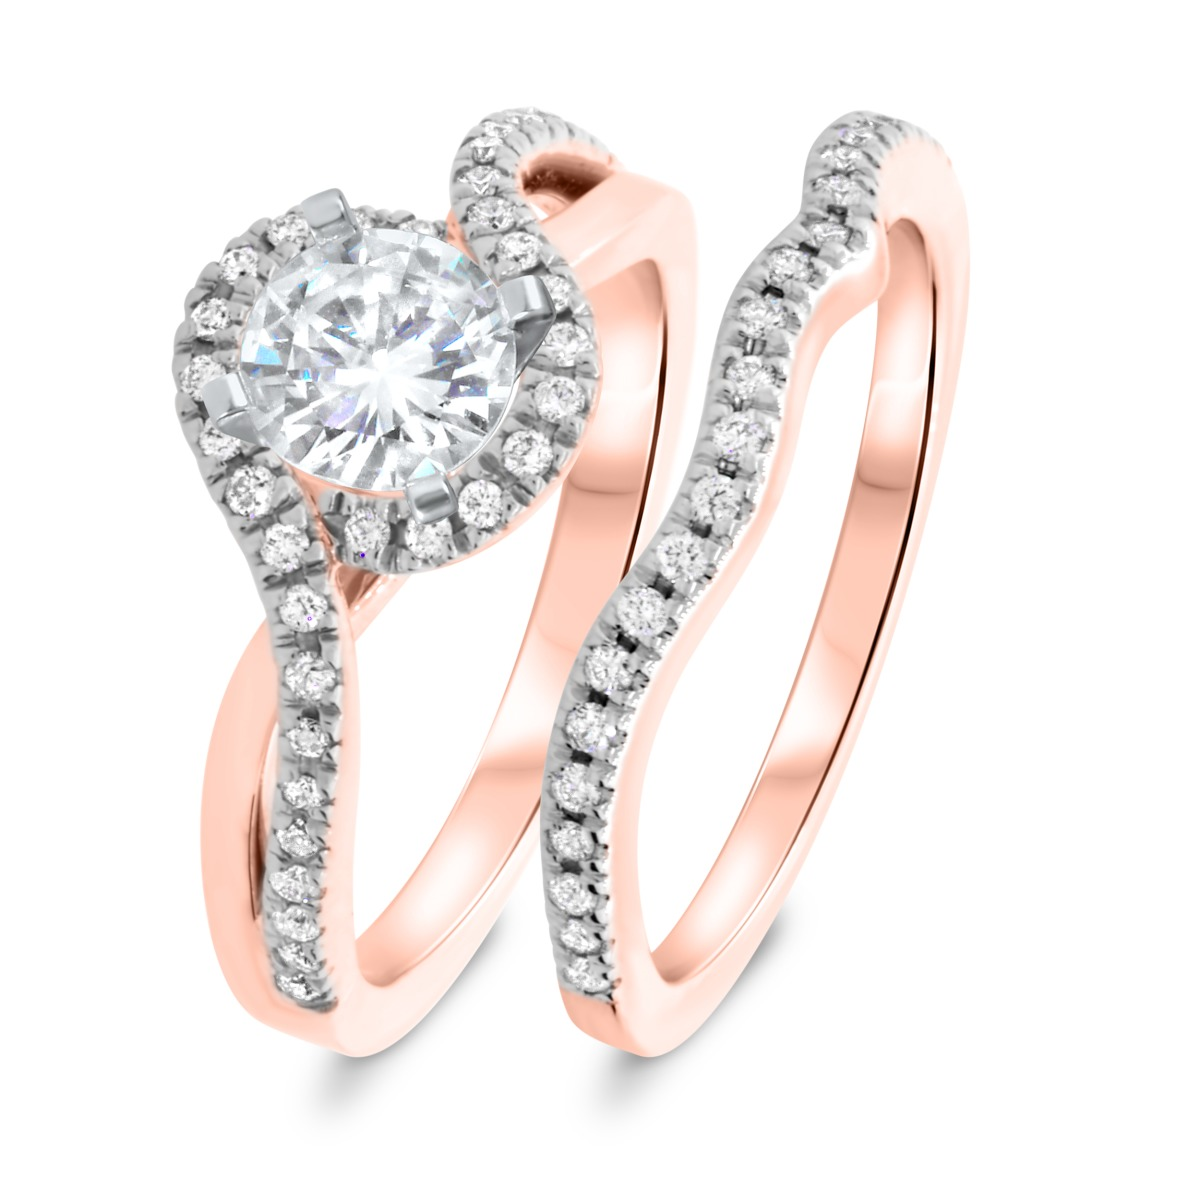 1 CT. T.W. Diamond Women's Bridal Wedding Ring Set 14K Rose Gold